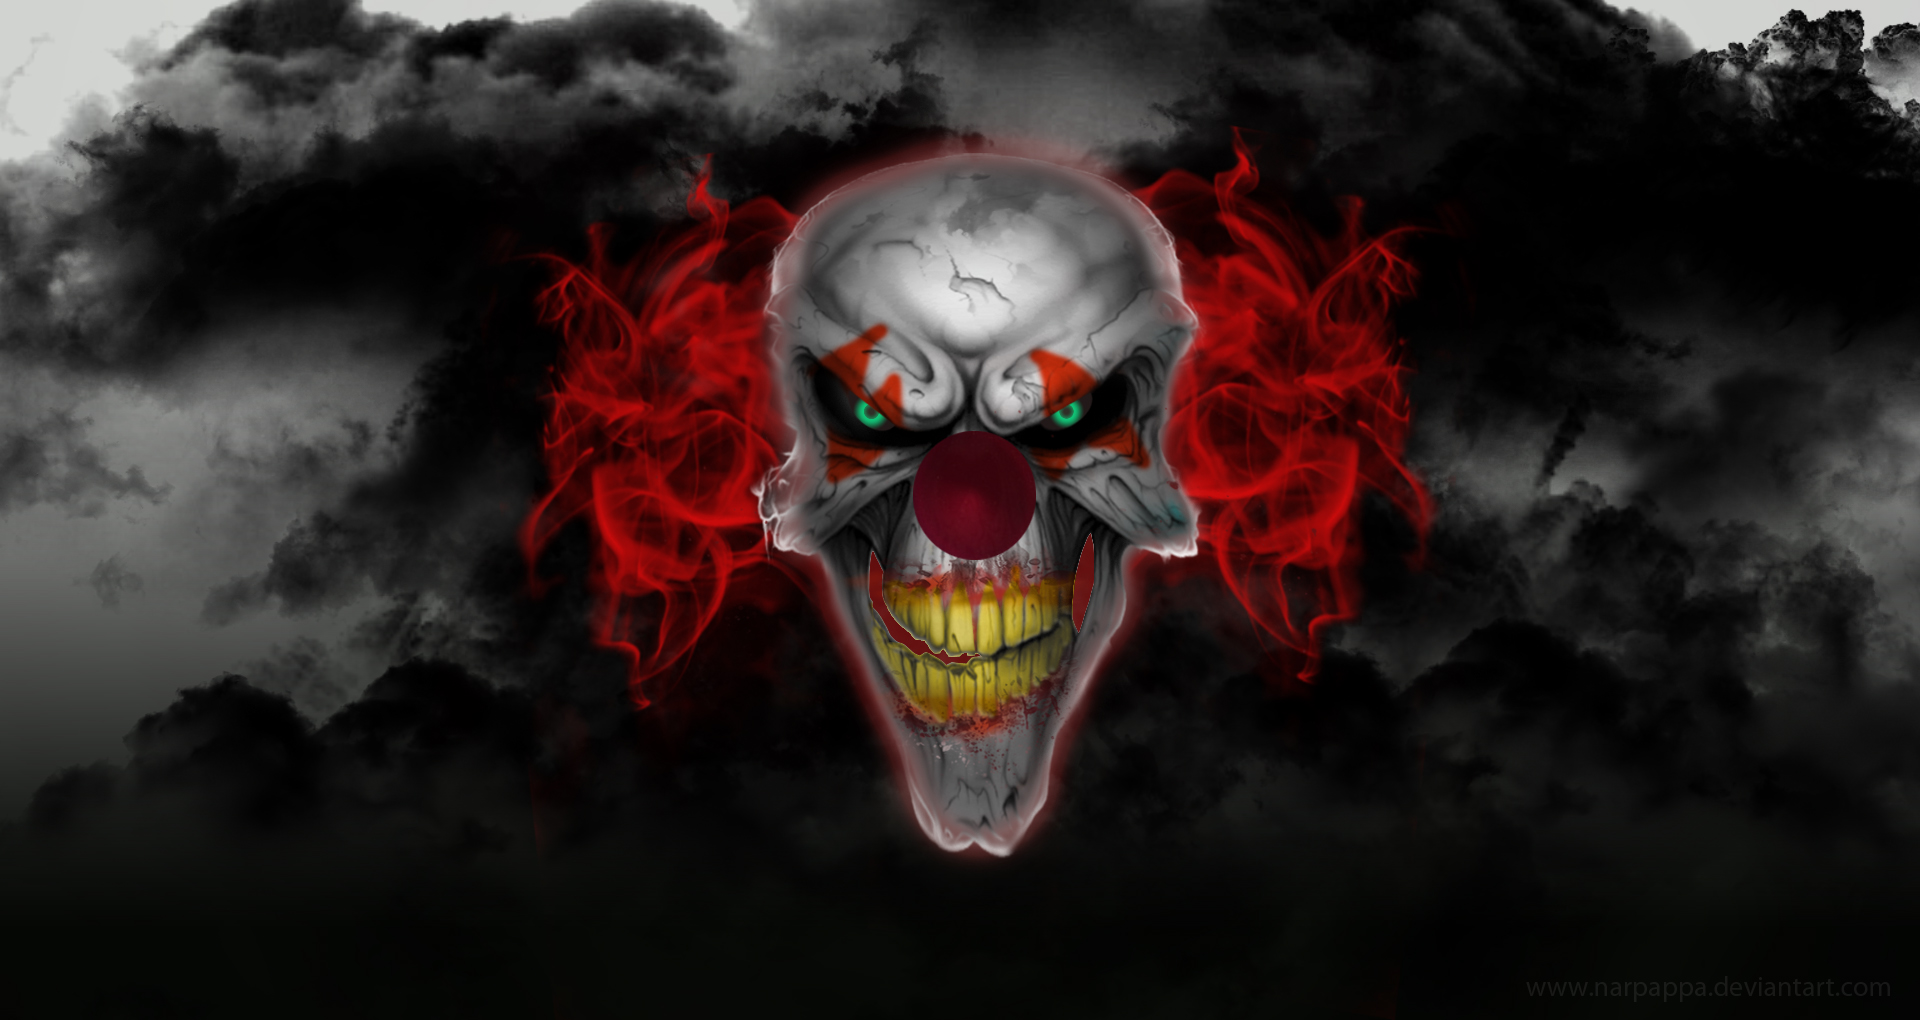 Free Clown Wallpaper - WallpaperSafari